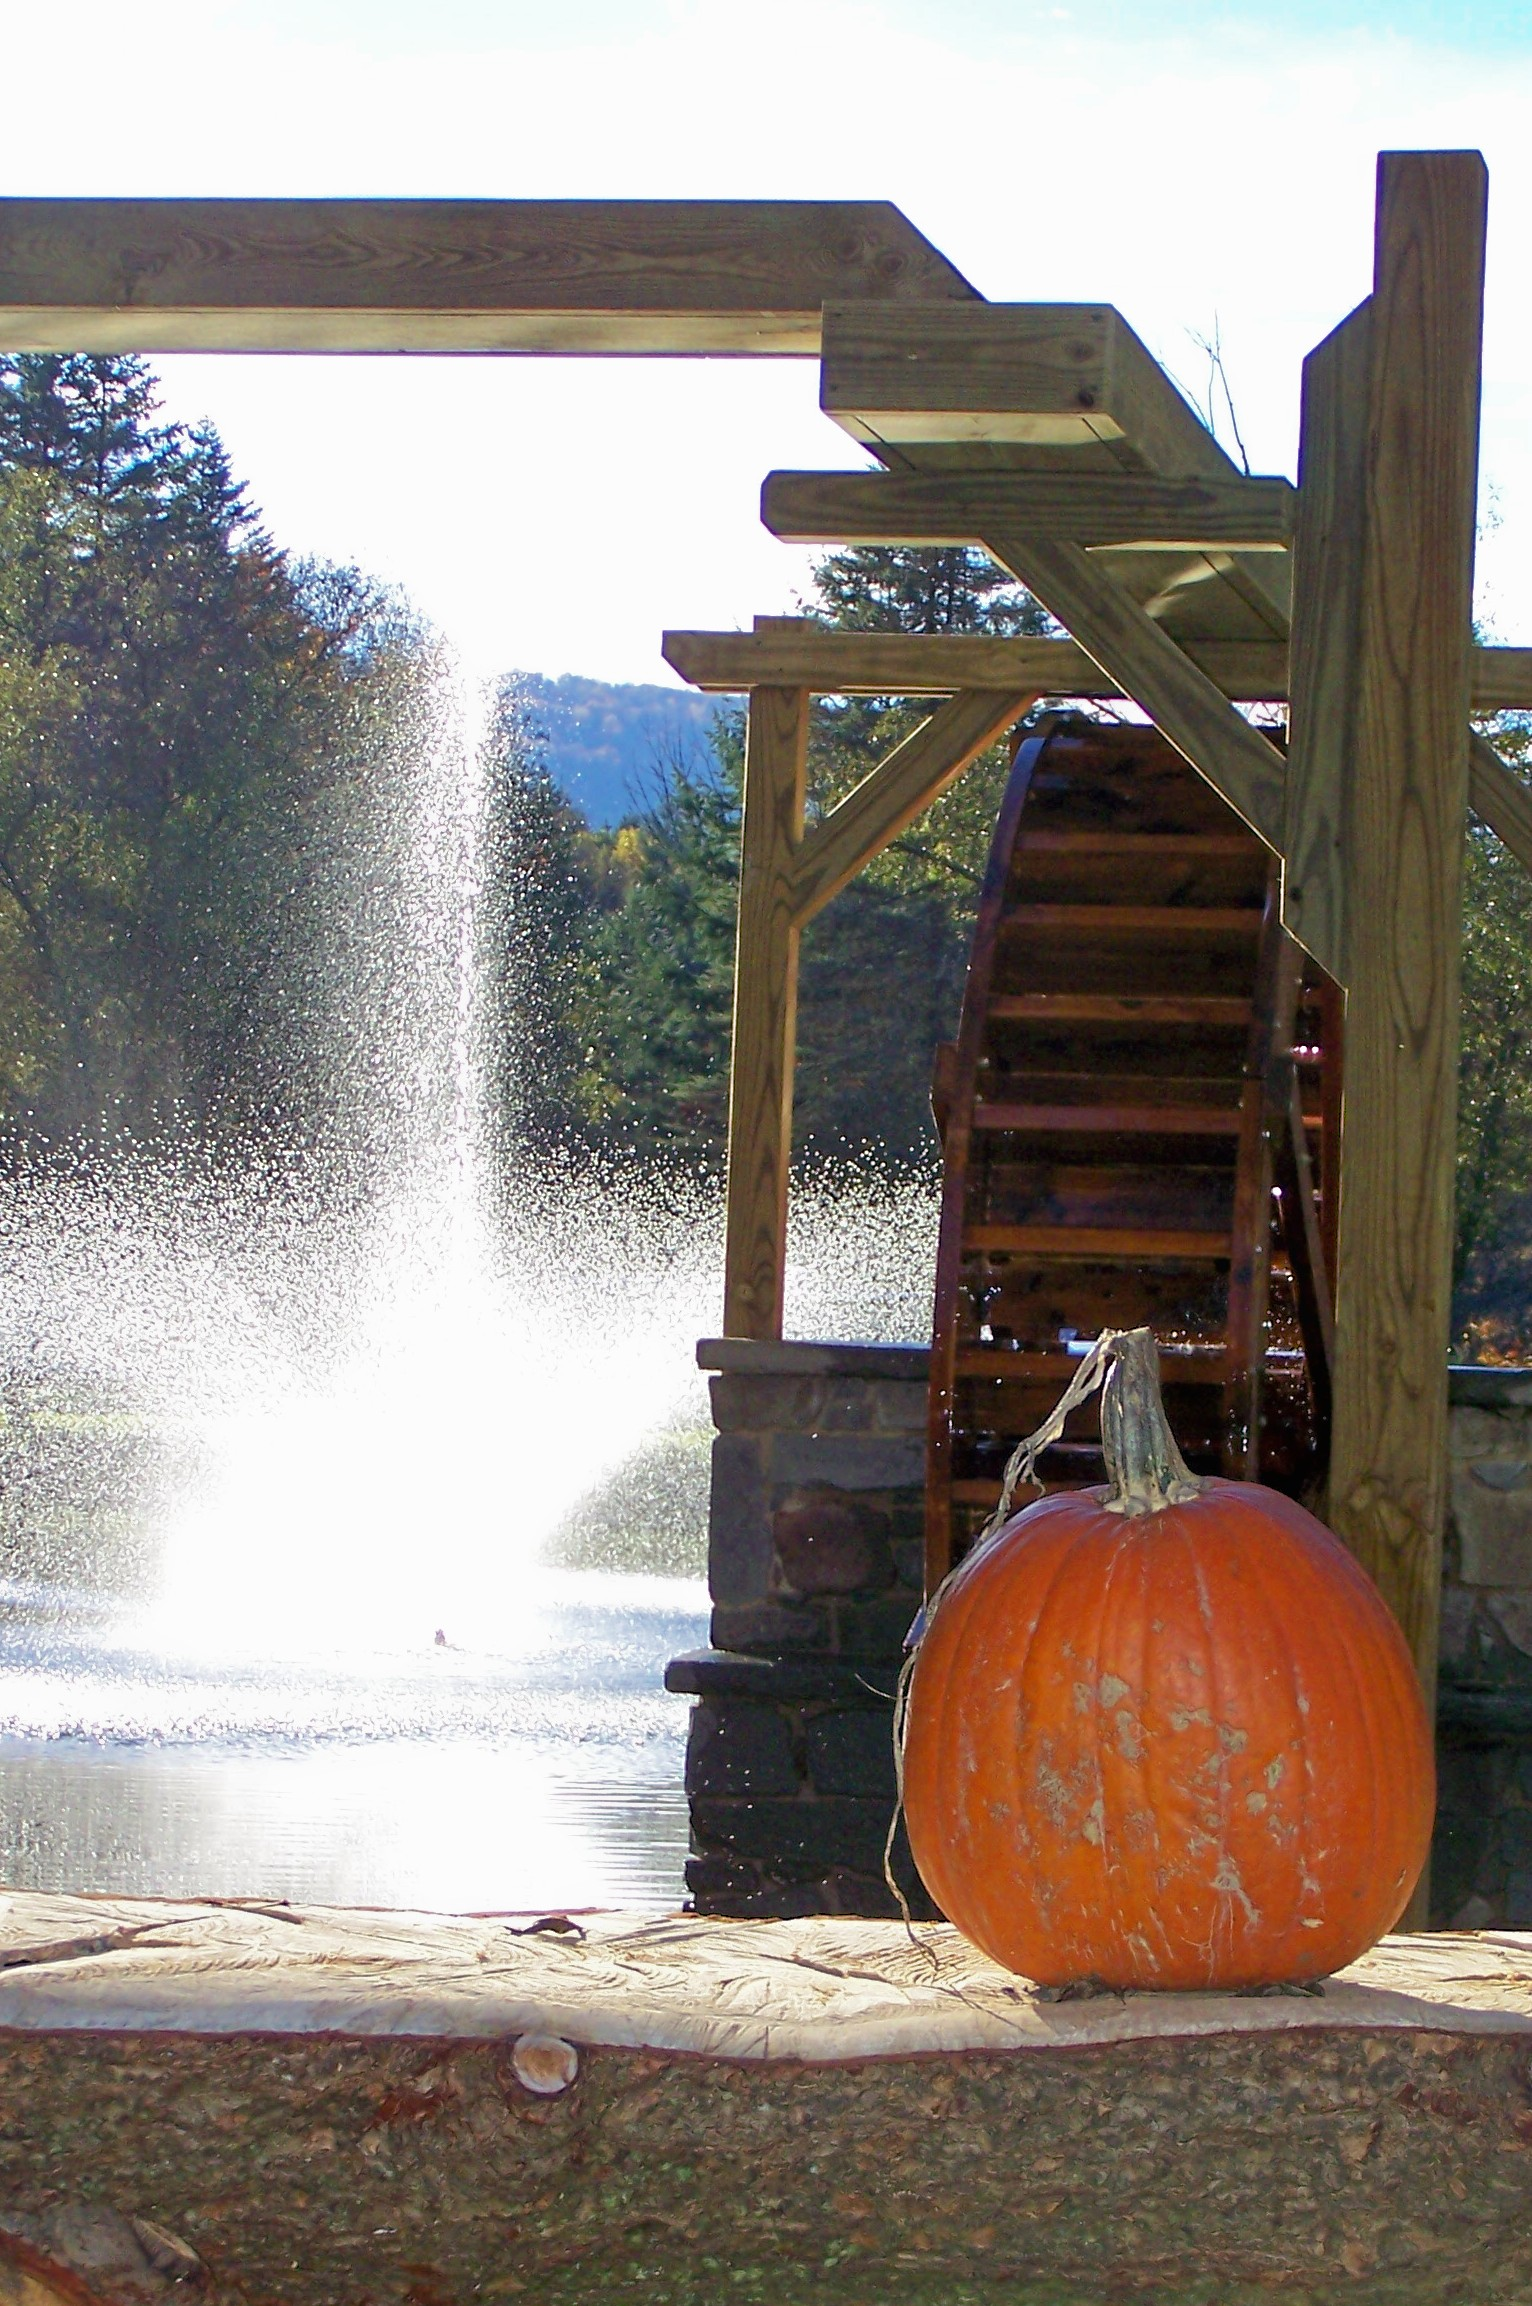 waterwheelpumpkinandfountain.jpg